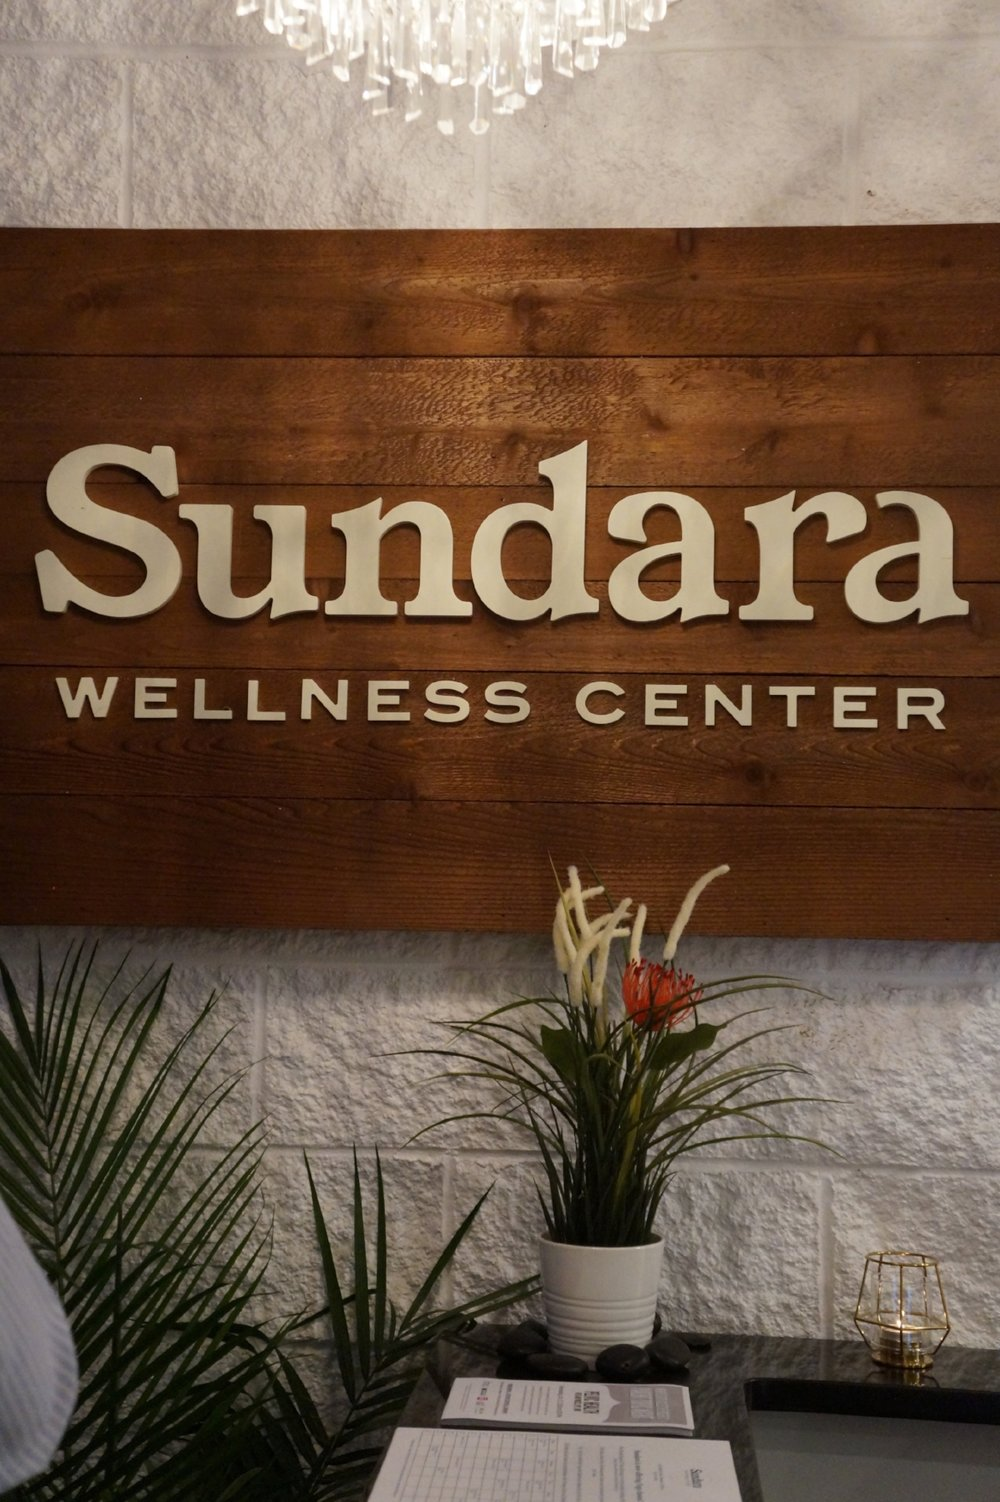 Andrea Fenise Memphis Fashion Blogger and Memphis Wellness Blogger shares visit to Memphis new wellness center Sundara Wellness